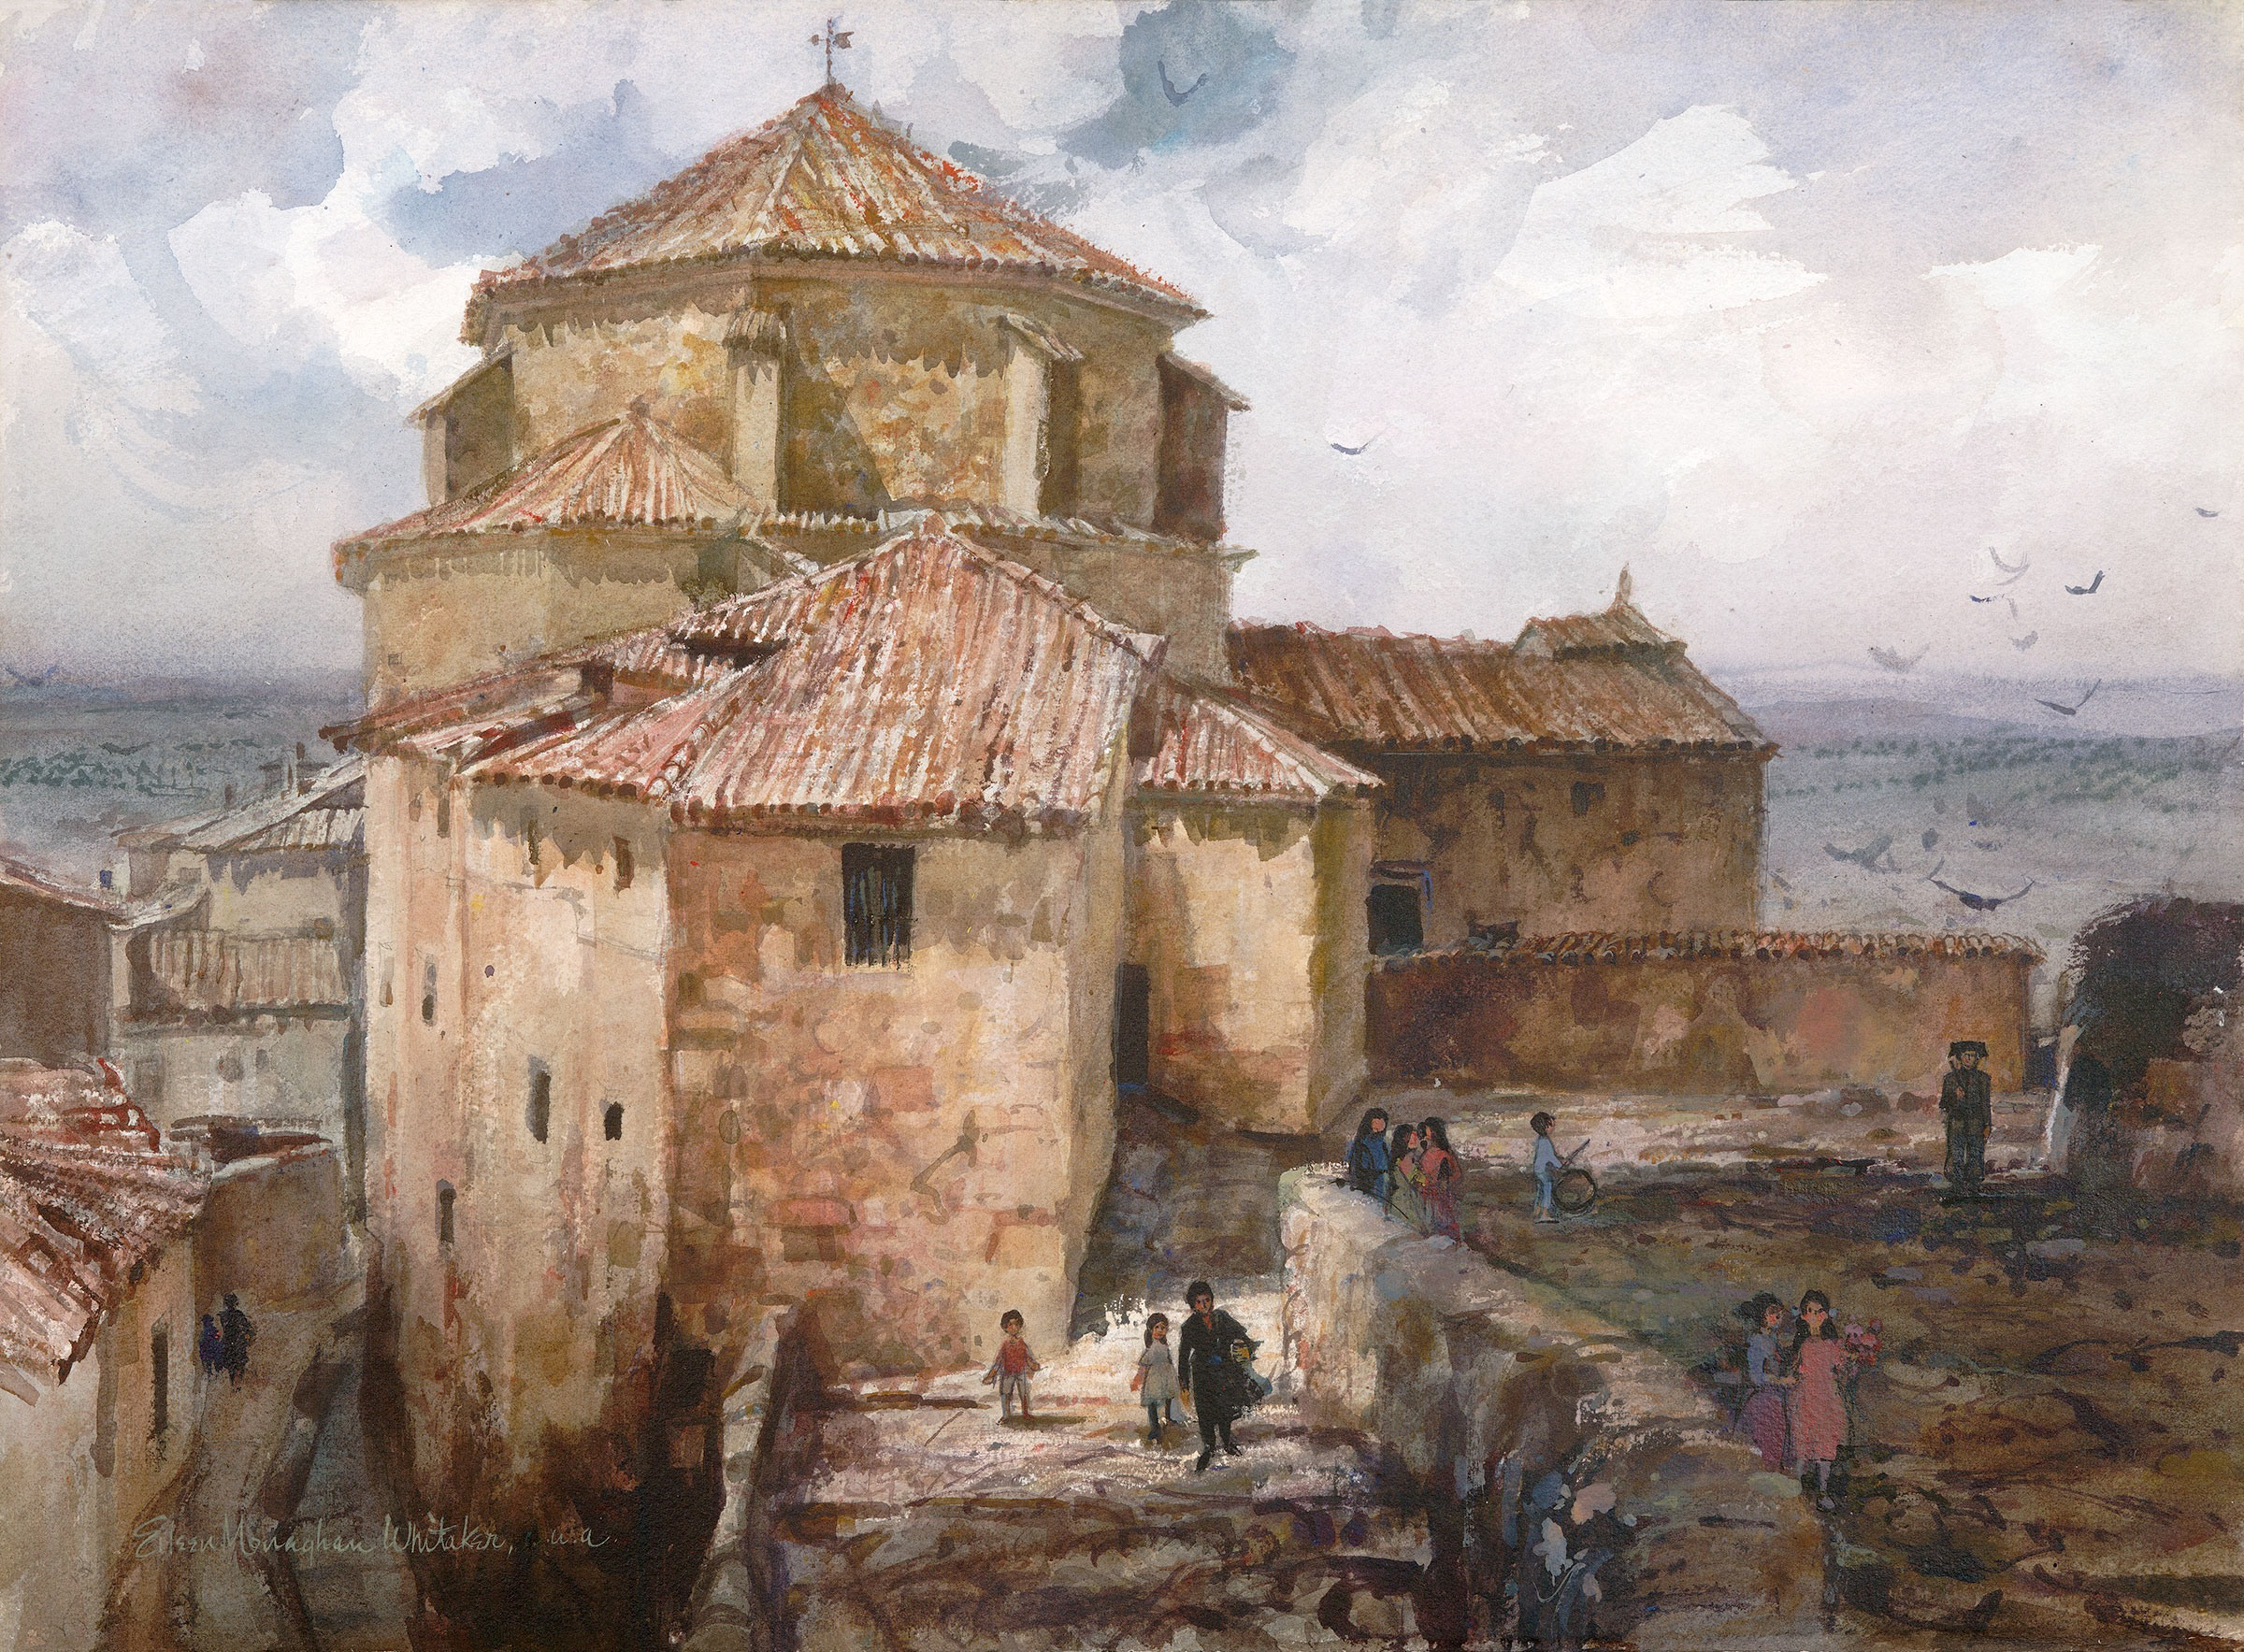 """Cuenca, Spain"" 1965 © Eileen Monaghan Whitaker A.N.A.  22x30 inches Watercolor"